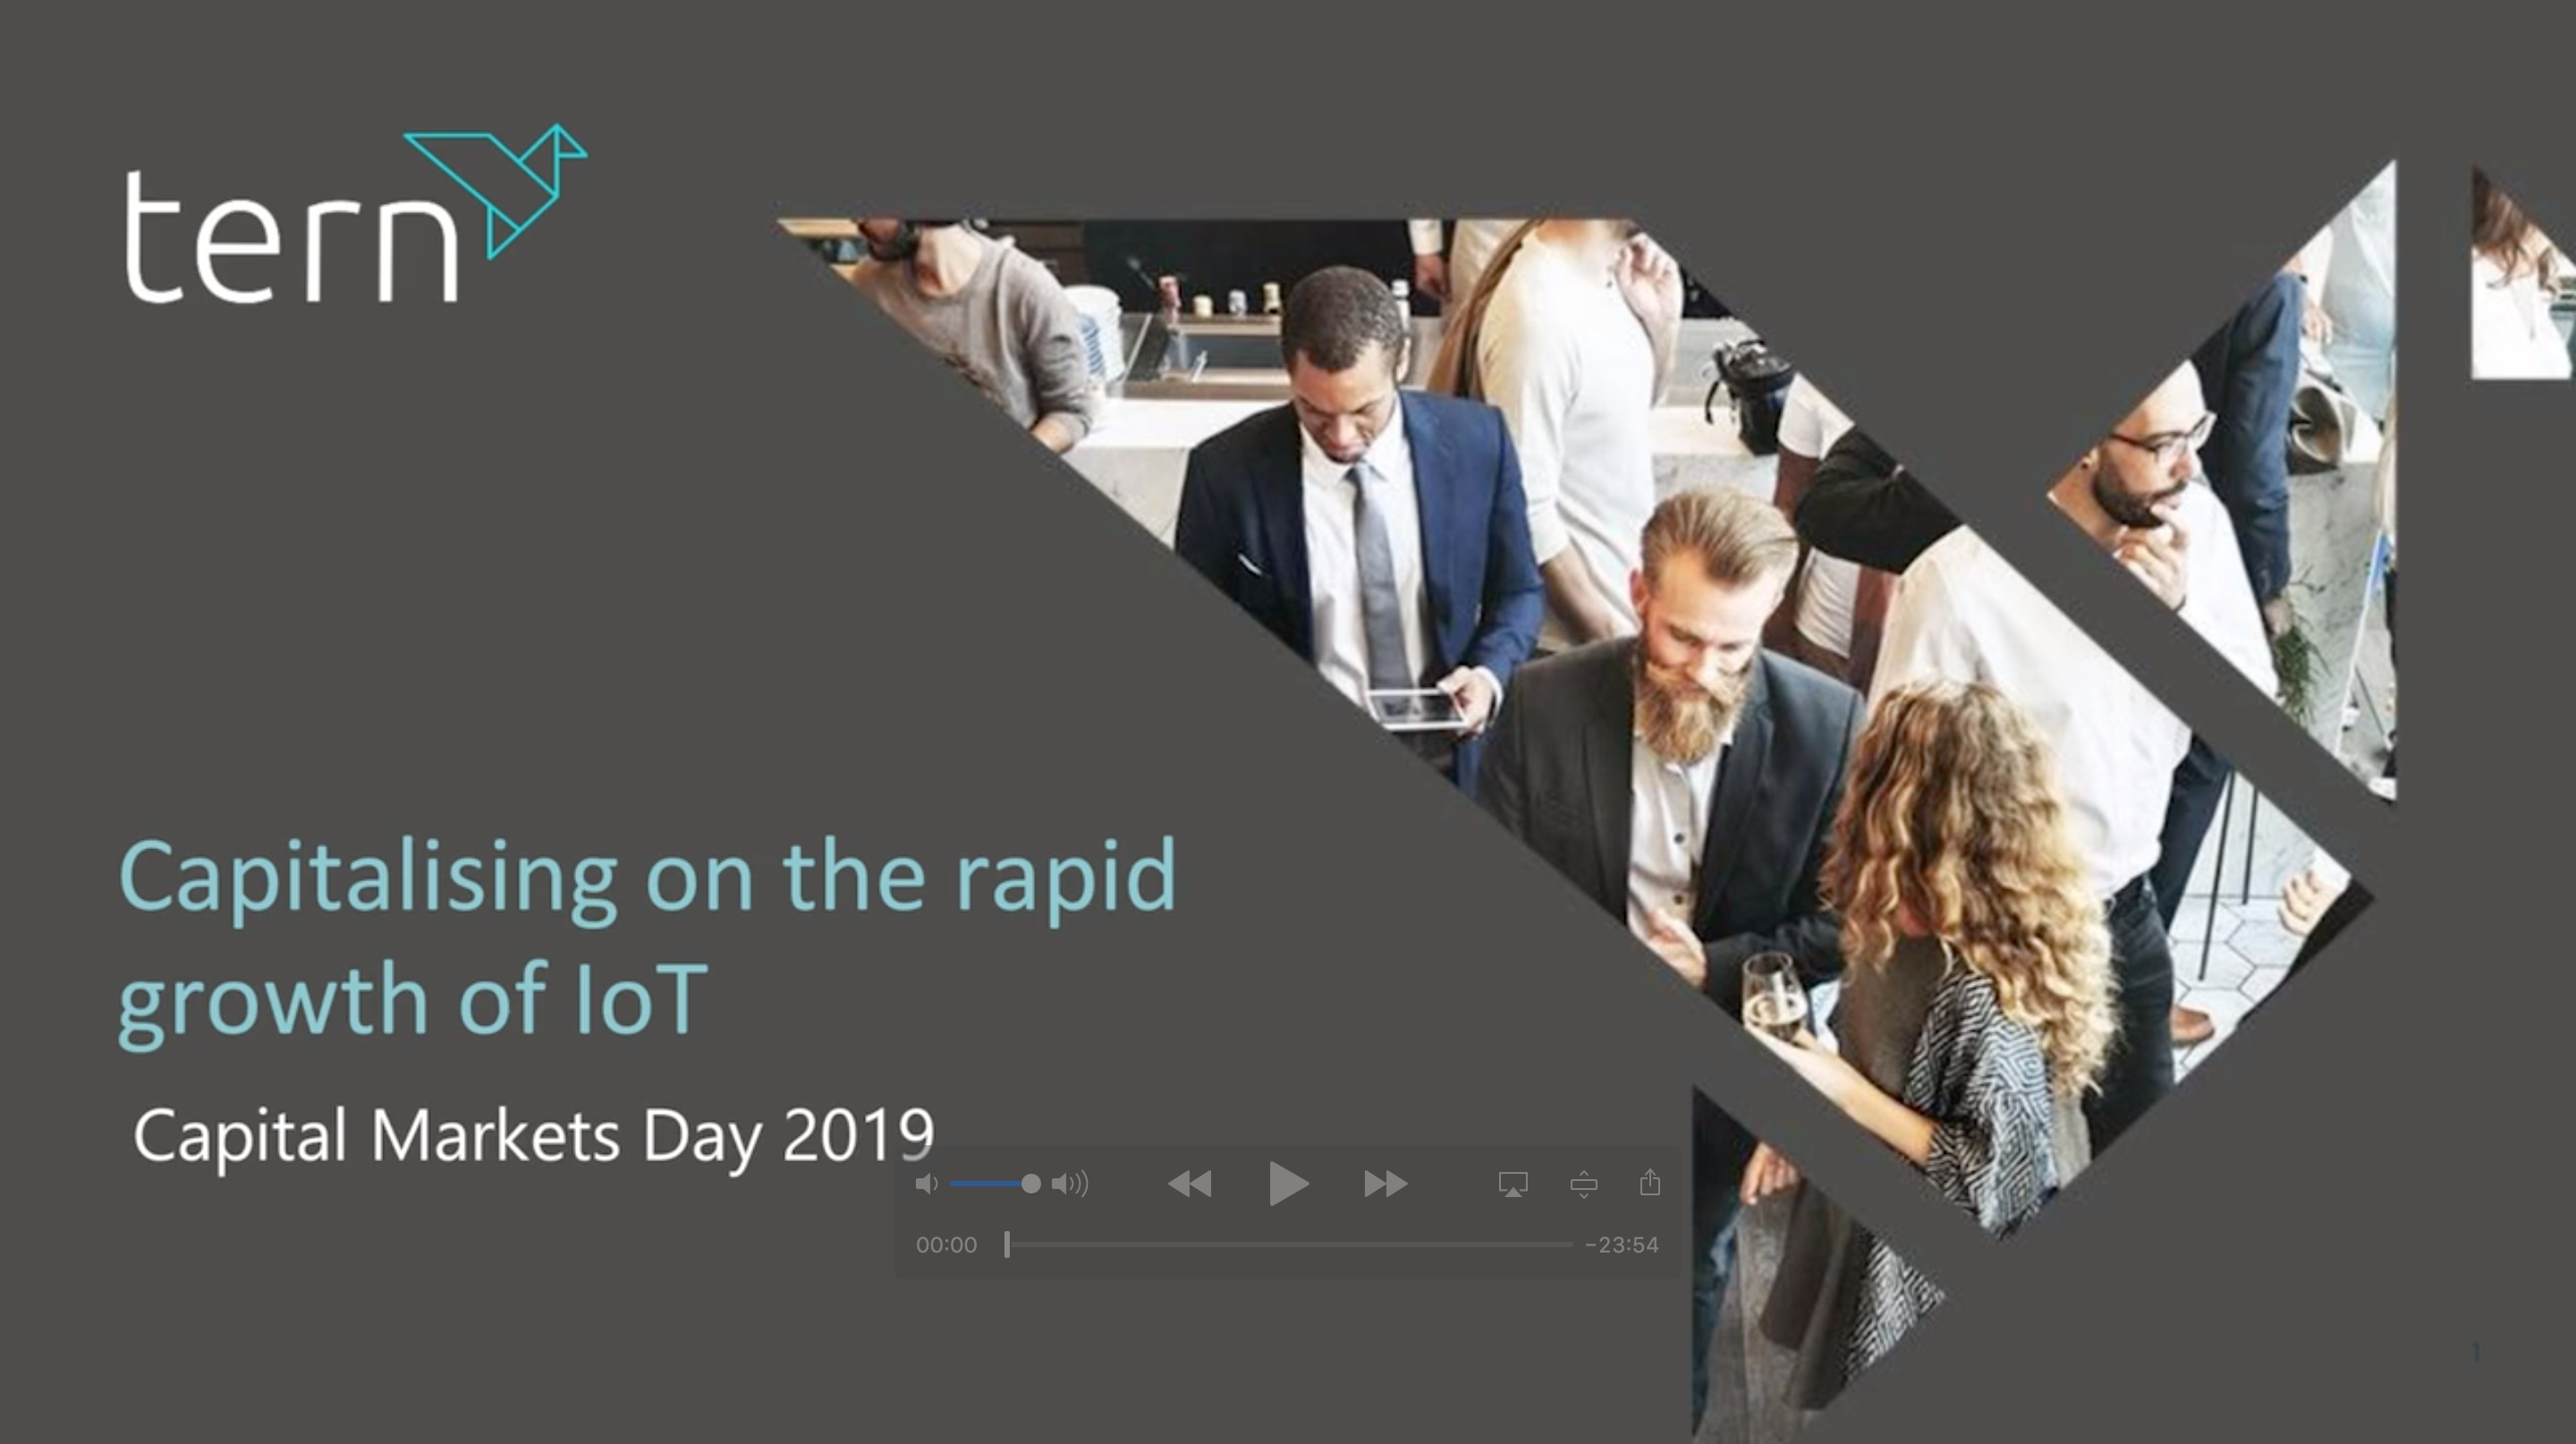 Capital Markets Day video